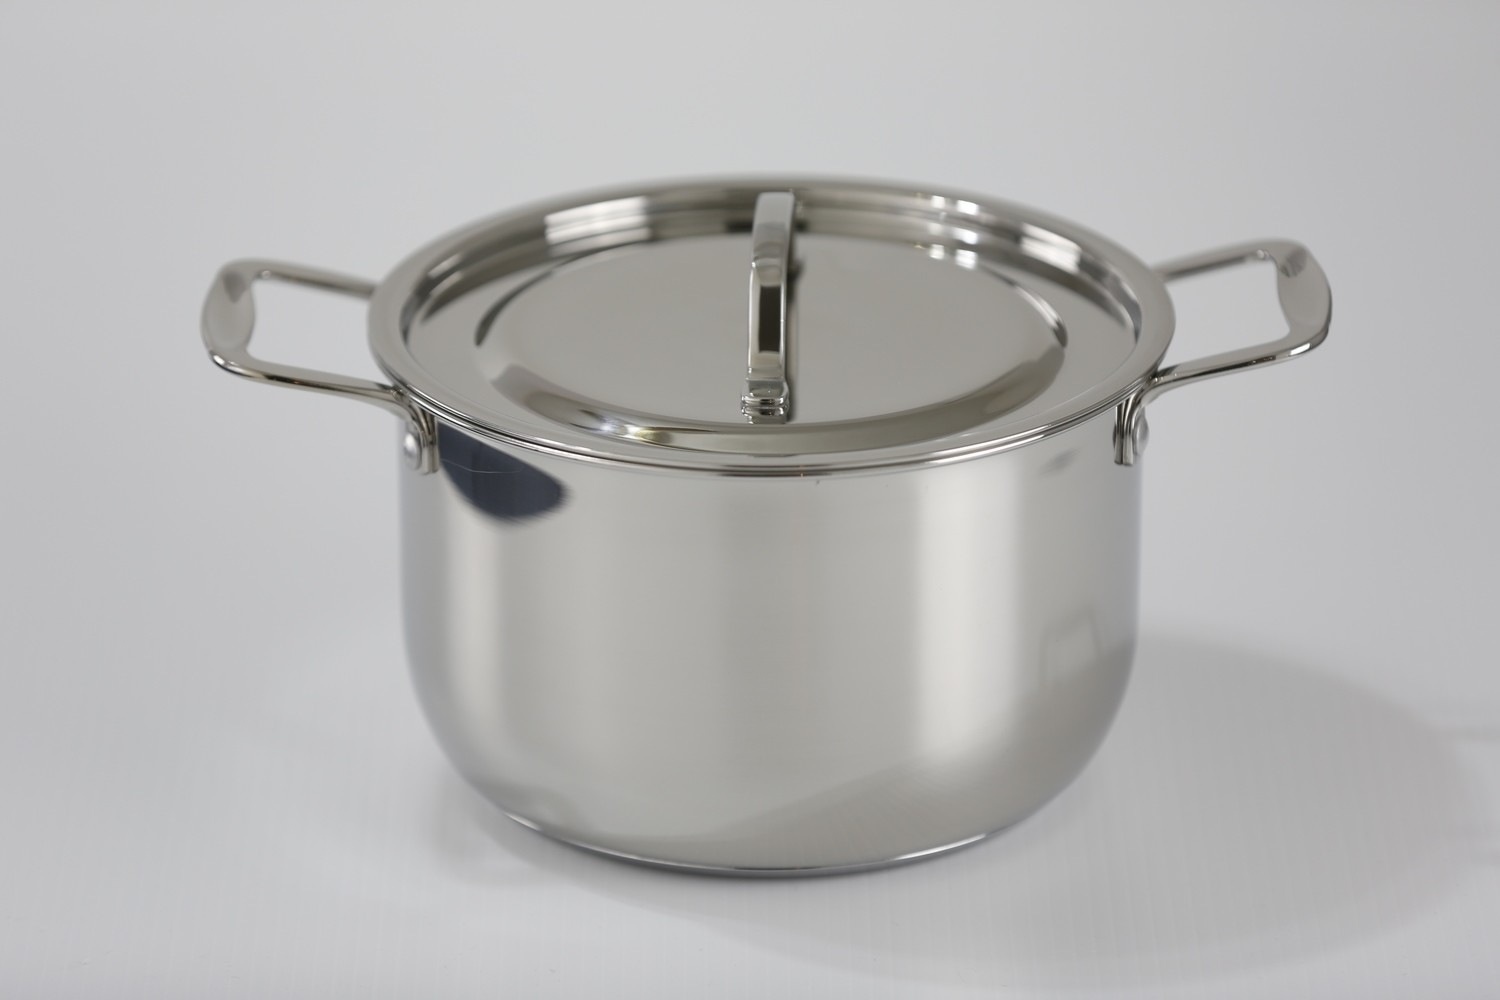 SS1 - 8.77 Qt. Stainless Steel tri-ply bottom induction Sauce Pot with cover